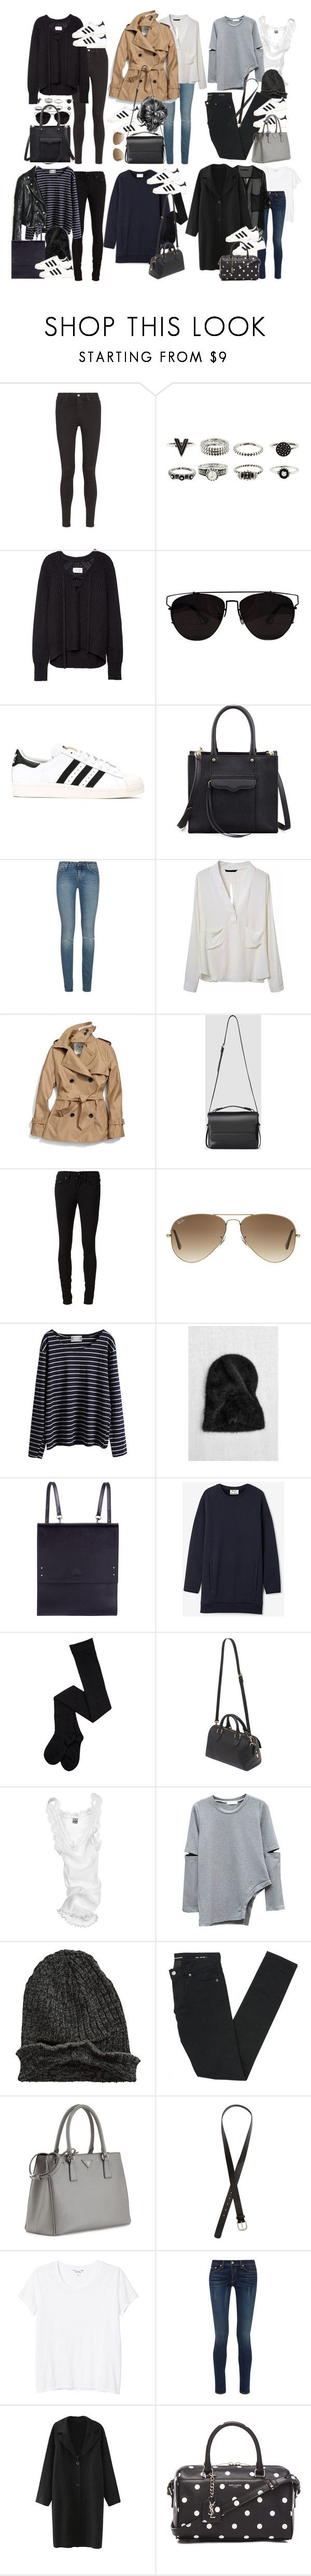 """""""Inspired fall post with superstar Adidas"""" by nikka-phillips ❤ liked on Polyvore featuring mode, AG Adriano Goldschmied, Retrò, adidas, Rebecca Minkoff, Yves Saint Laurent, Coach, AllSaints, rag & bone/JEAN en Ray-Ban"""